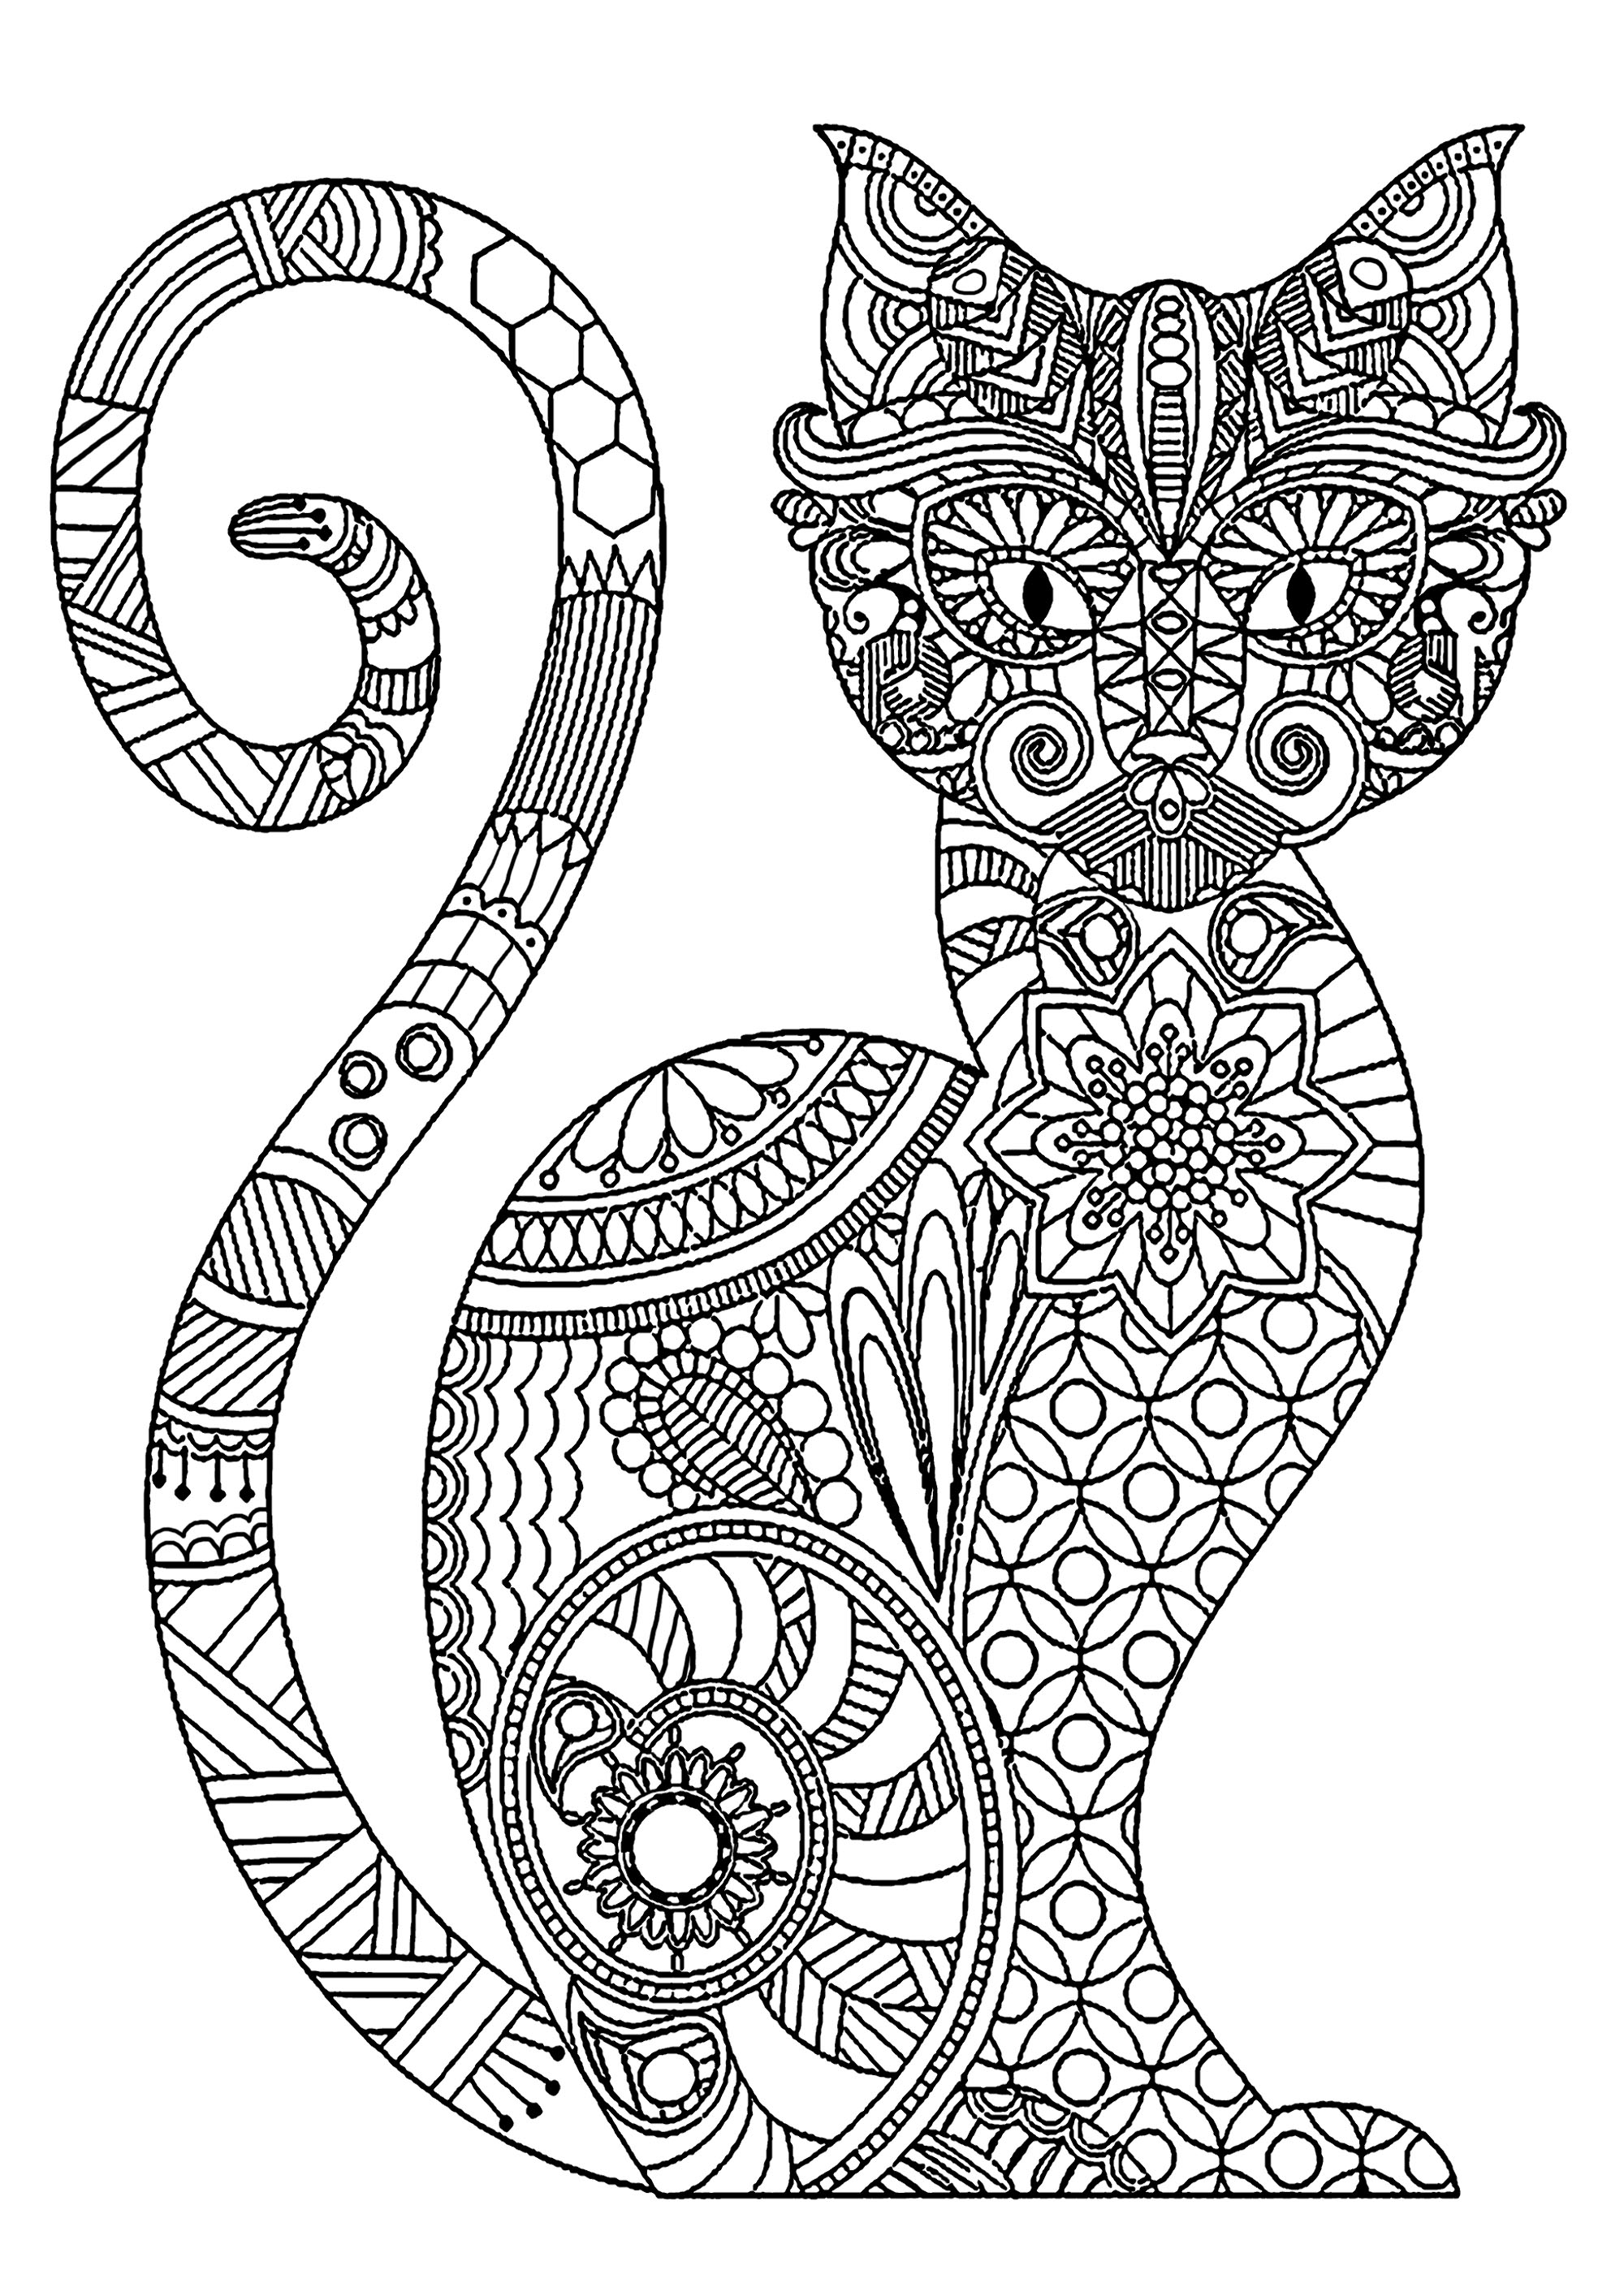 coloring pages for adults patterns calming patterns for adults who color live your life in patterns pages adults for coloring